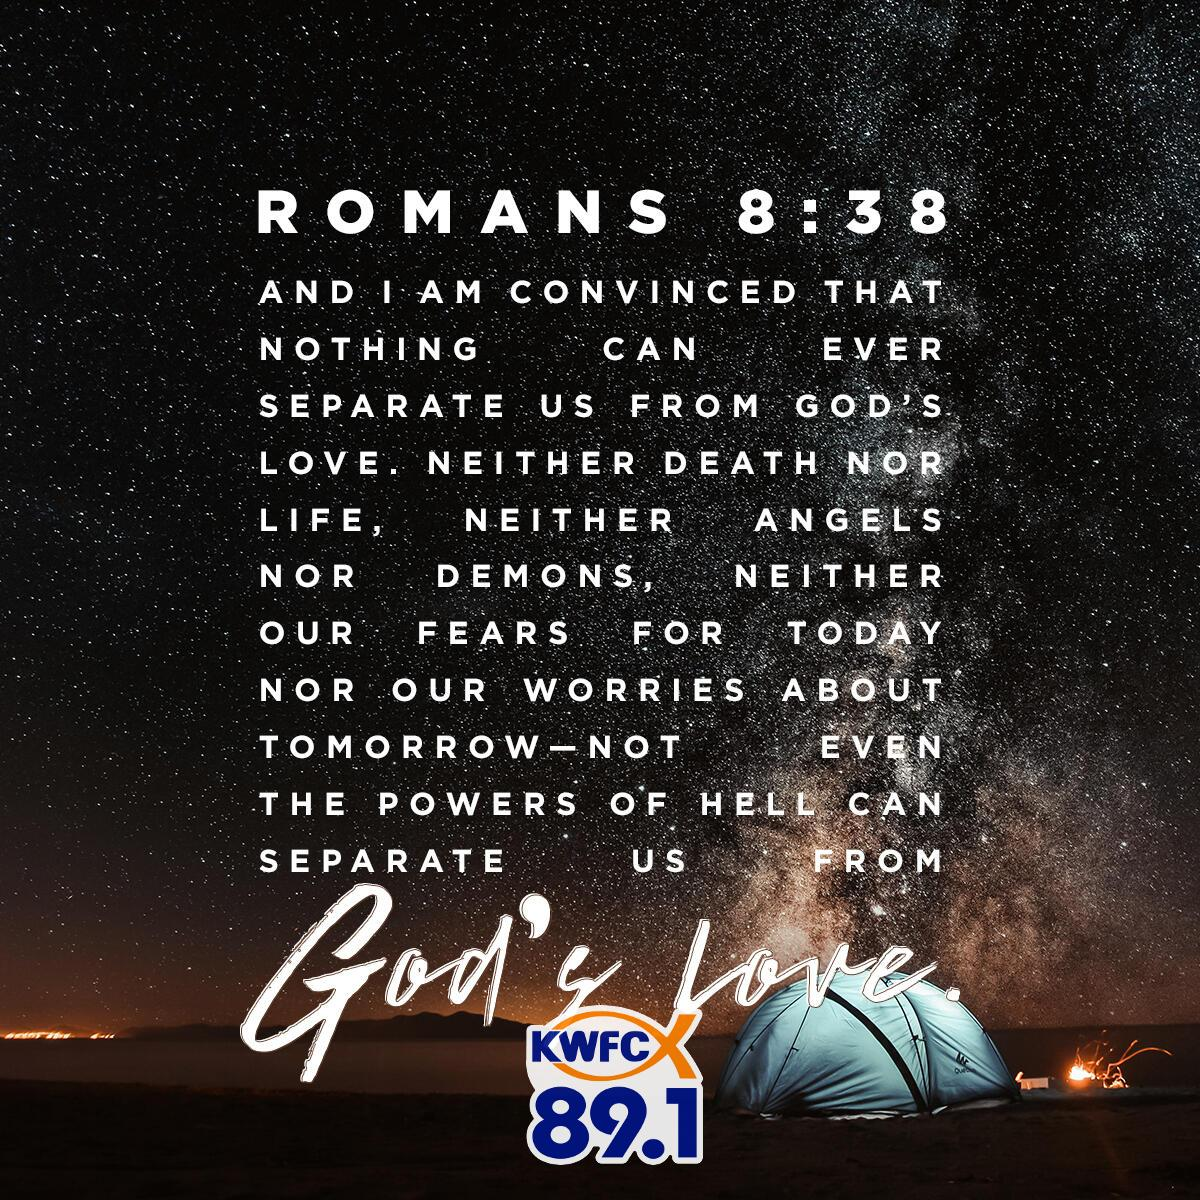 Romans 8:38 - Verse of the Day